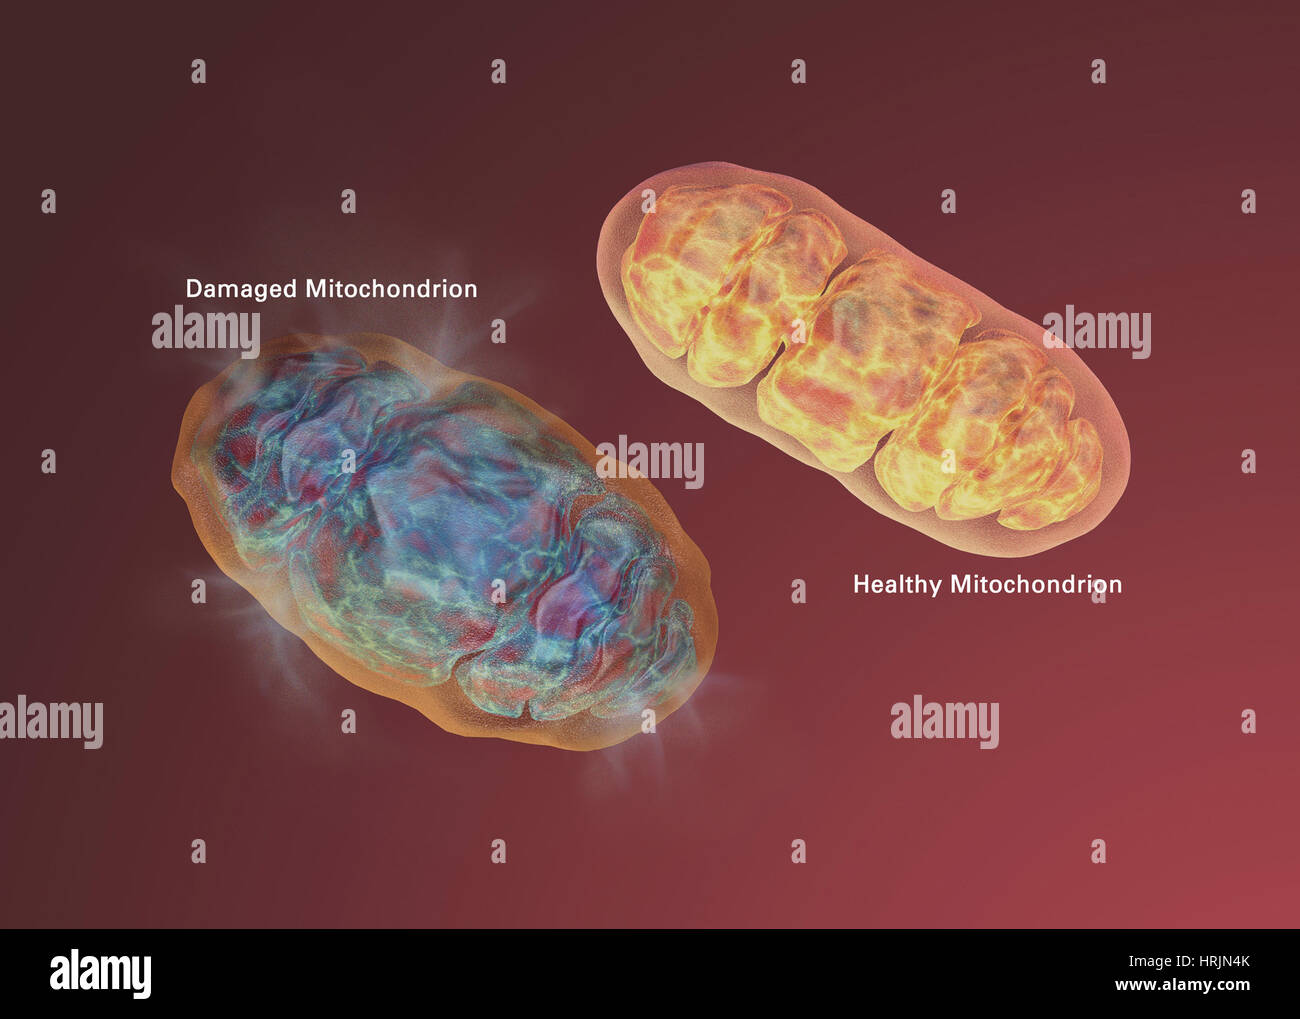 Alzheimer's Disease, Mitochondrial Dysfunction - Stock Image